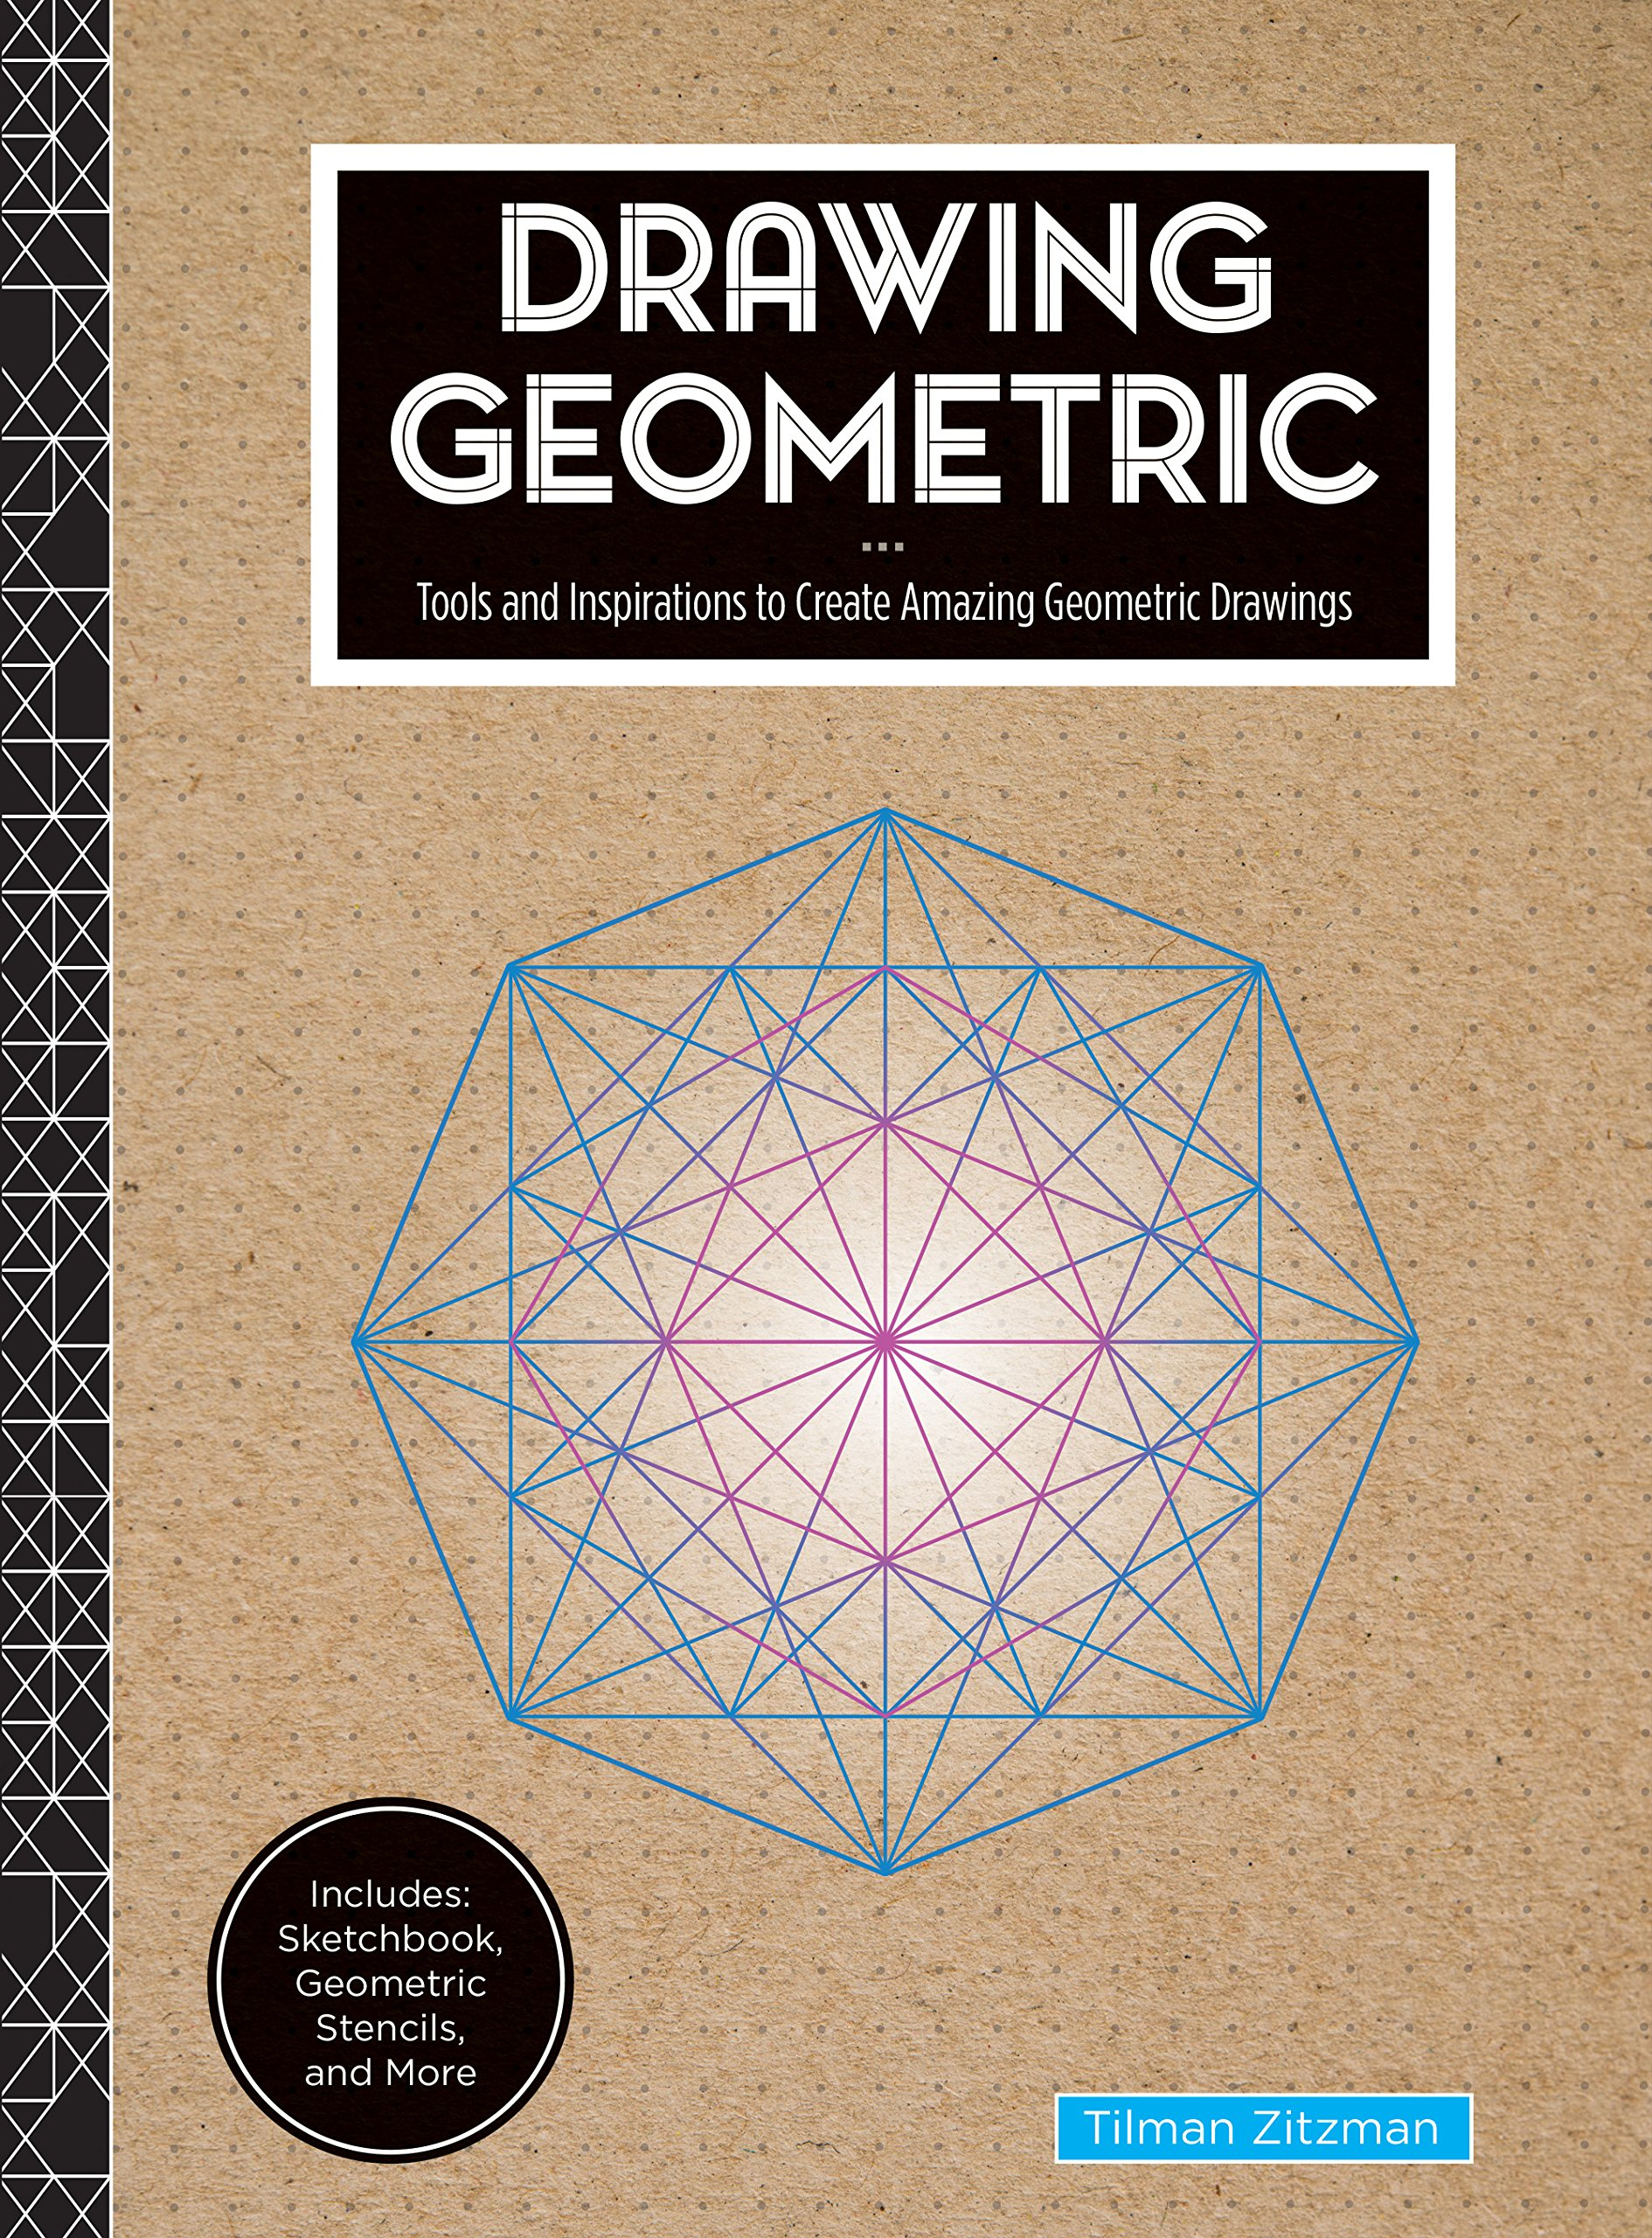 Drawing Geometric: Tools and Inspirations to Create Amazing Geometric Drawings - Includes: Sketchbook, Geometric Stencils, and More